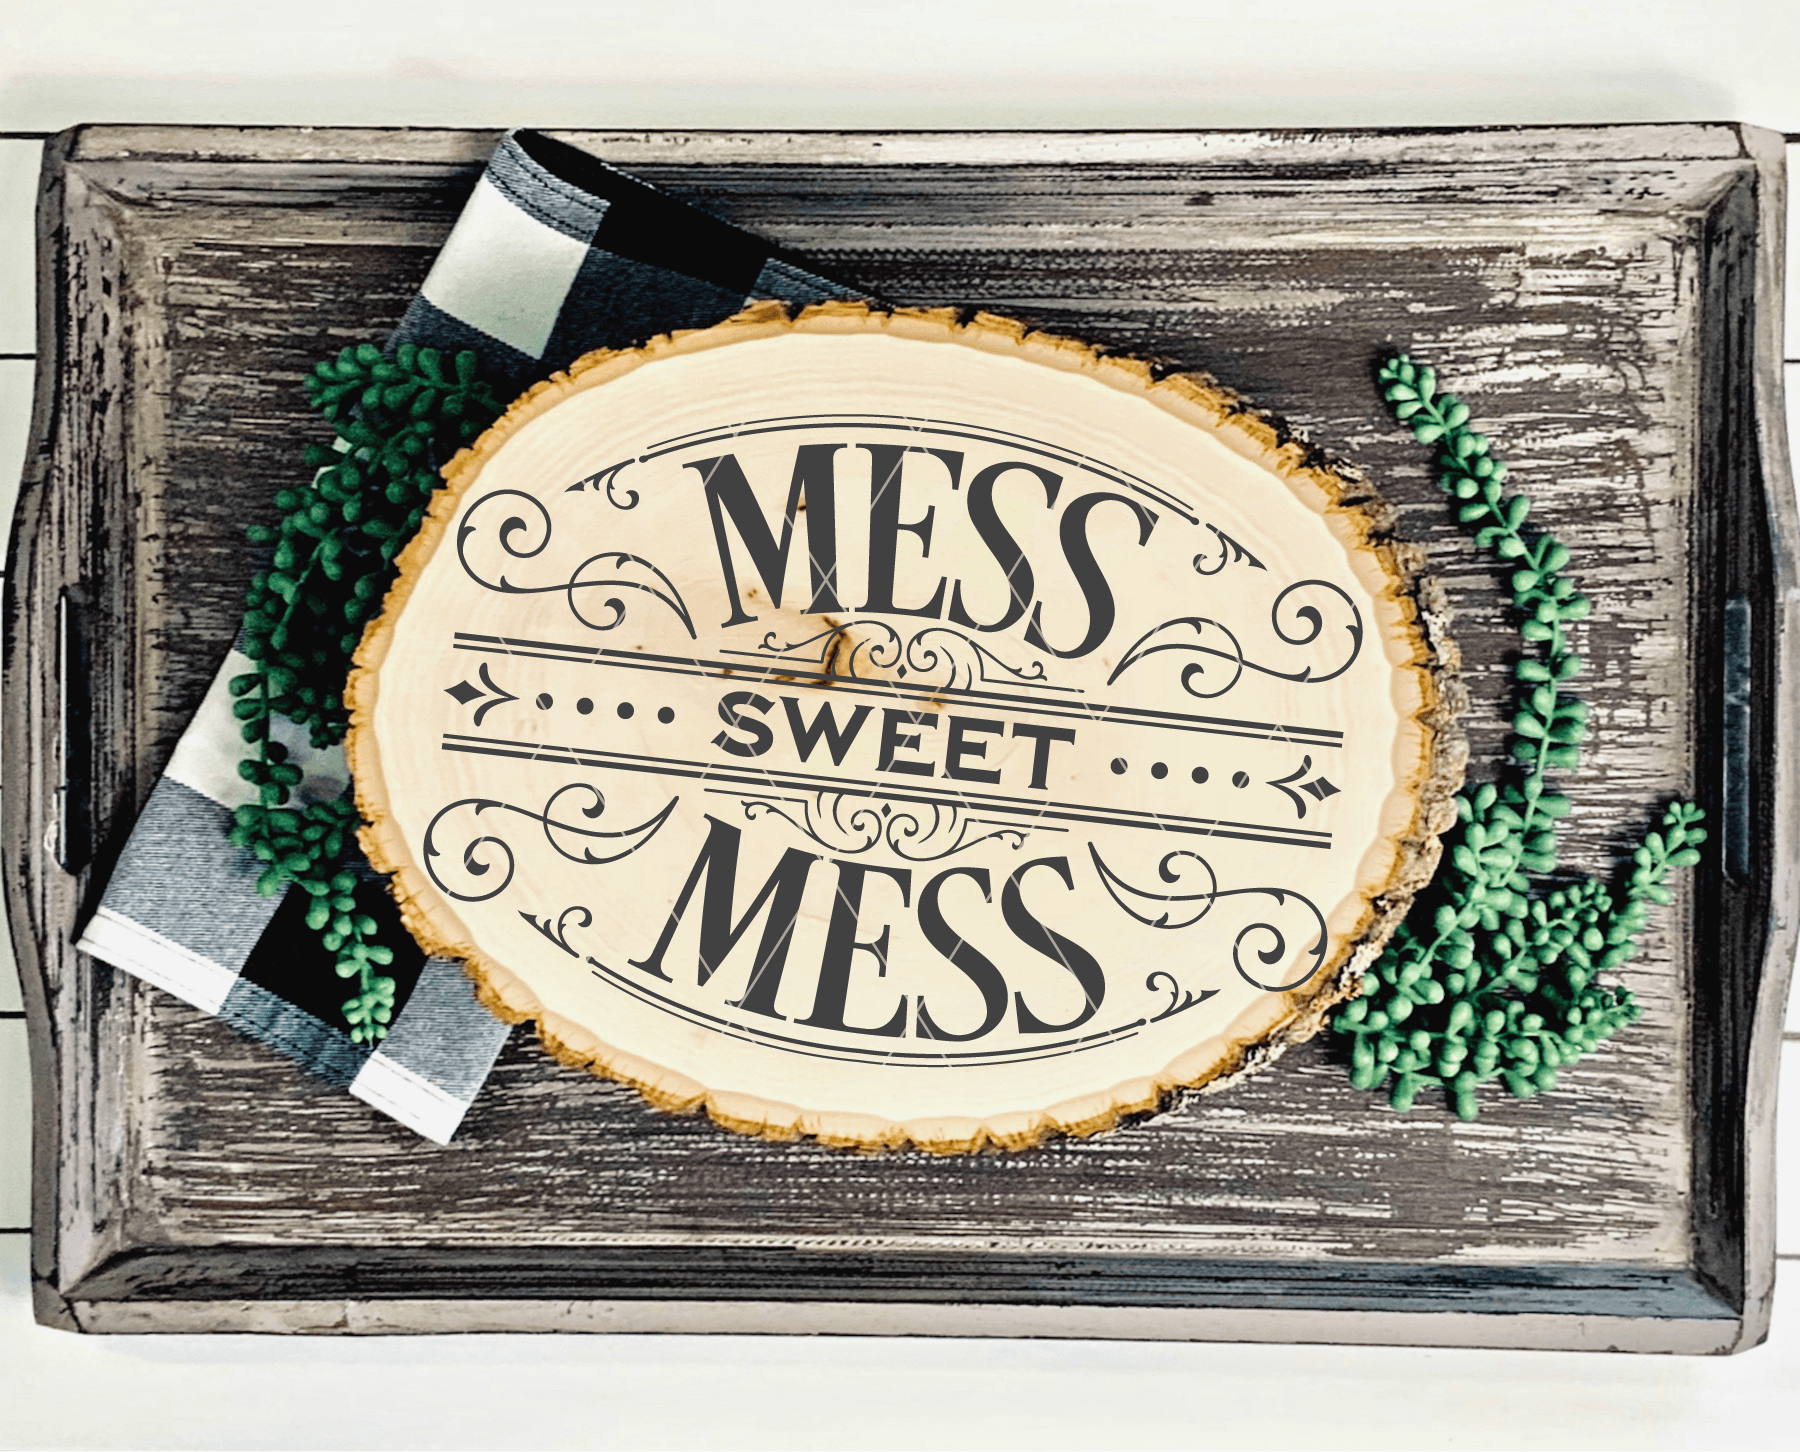 Victorian Style Mess Sweet Mess Cuttable SVG File - Commercial Use SVG Files